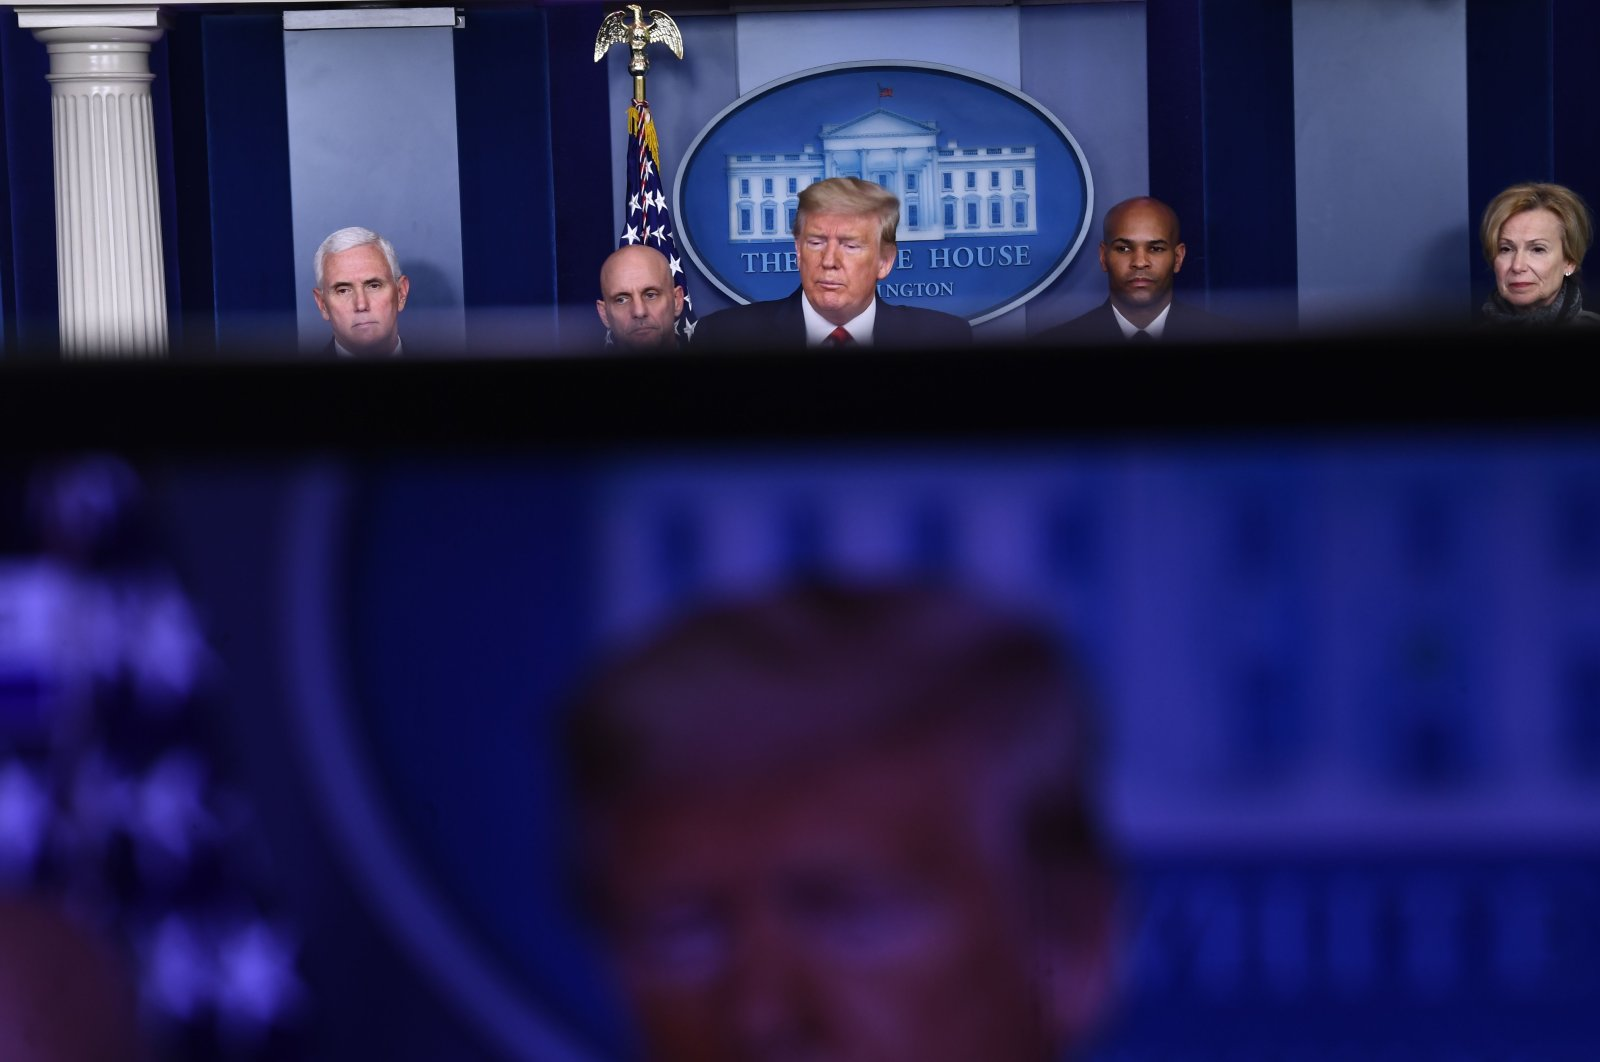 US President Donald Trump (C), with (L-R) Vice President Mike Pence, FDA Commissioner Stephen Hahn, US Surgeon General, Dr. Jerome Adams, and White House Coronavirus Task Force Coordinator, Dr. Deborah Birx, speaks during the daily briefing on the novel coronavirus, COVID-19, at the White House on March 19, 2020, in Washington, DC. (AFP Photo)